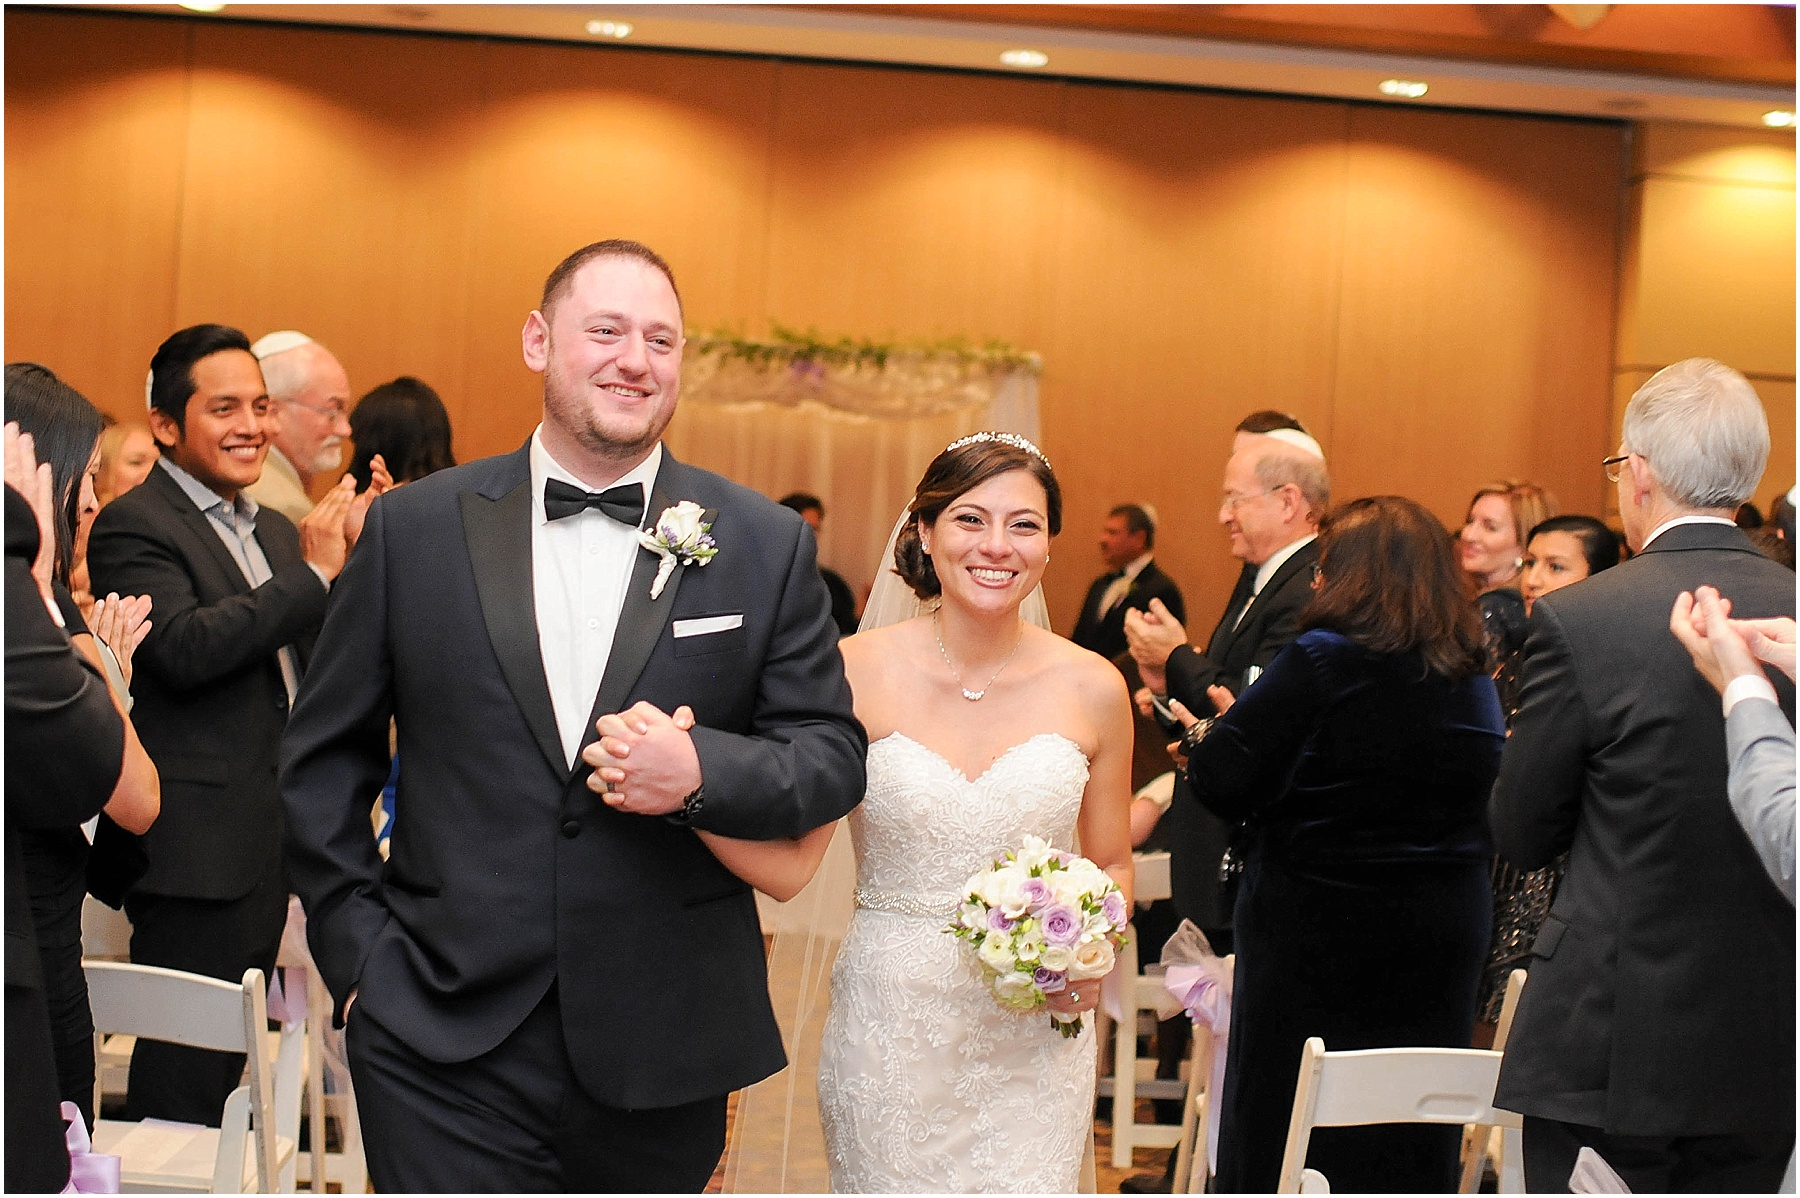 Black tie Pier 5 Hotel wedding in Baltimore Maryland - Ana Isabel Photography 26